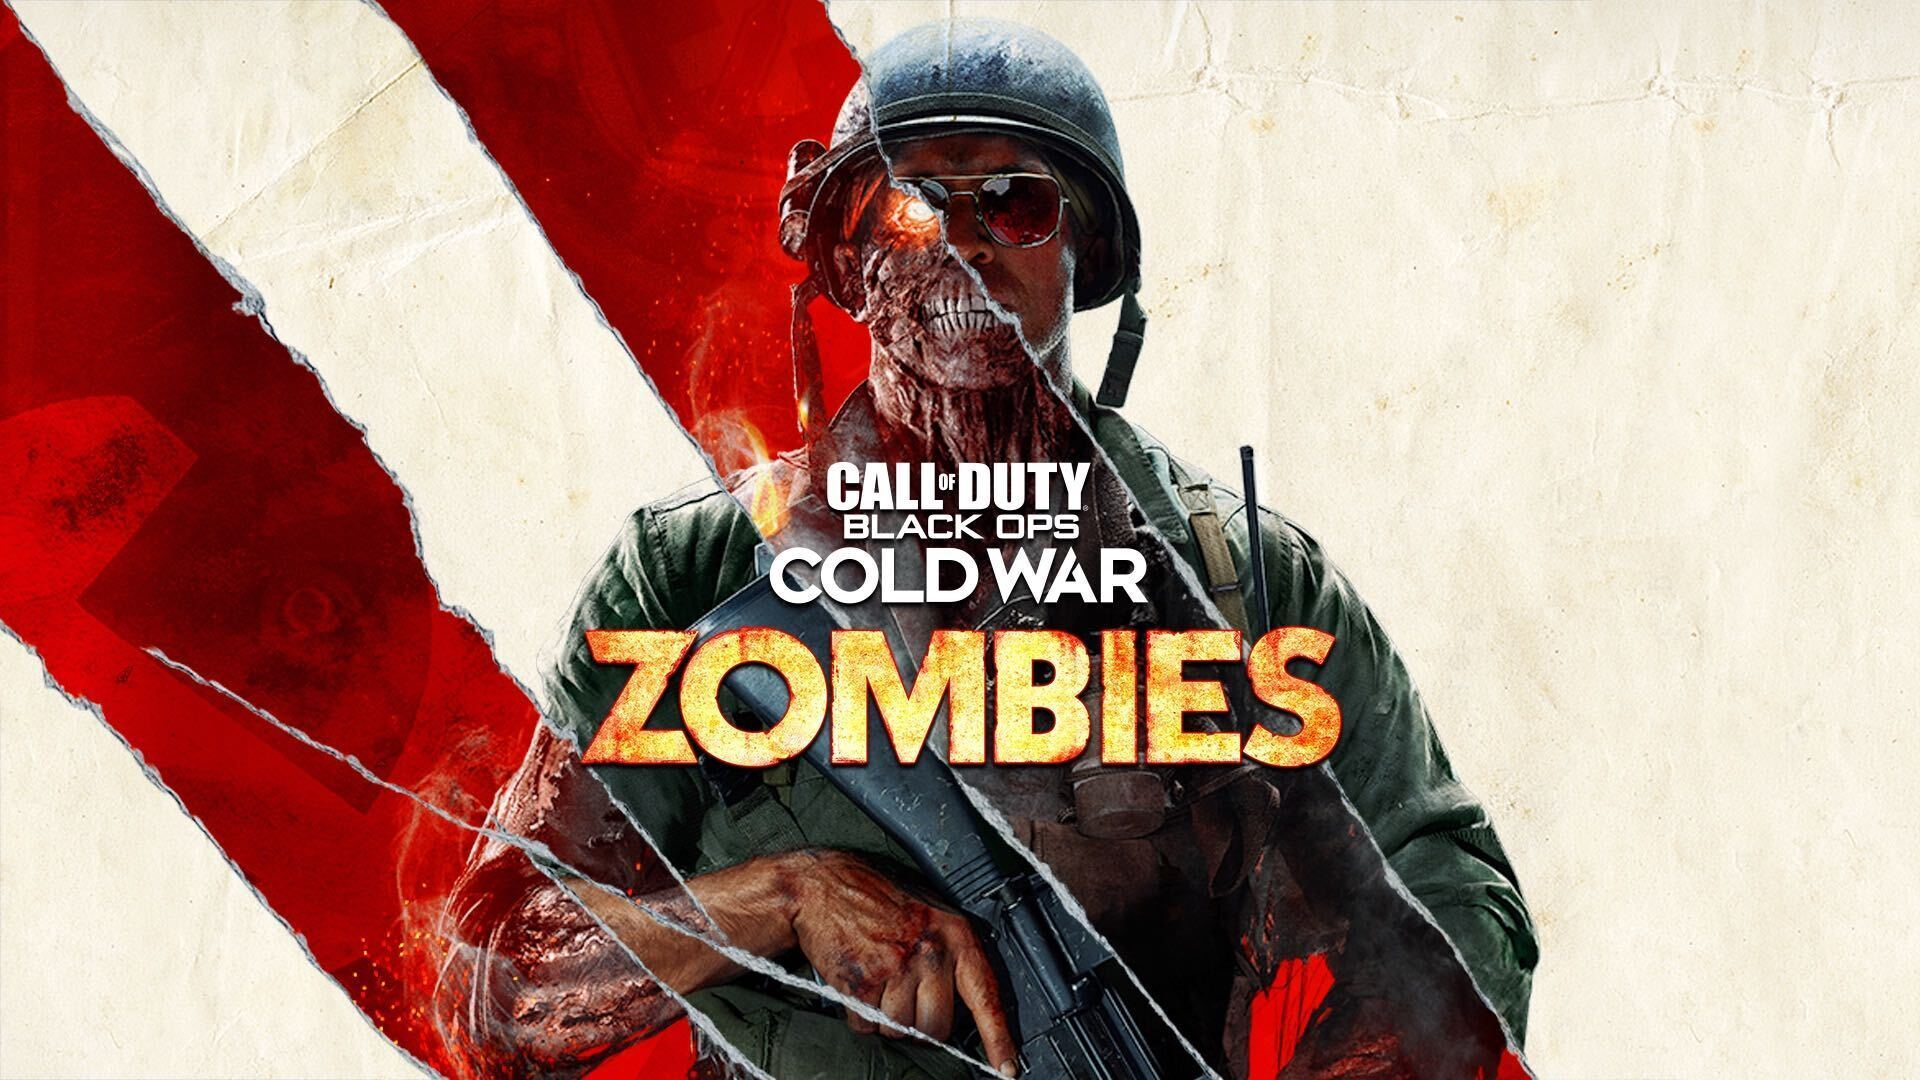 COD Black Ops Cold War Zombies طور